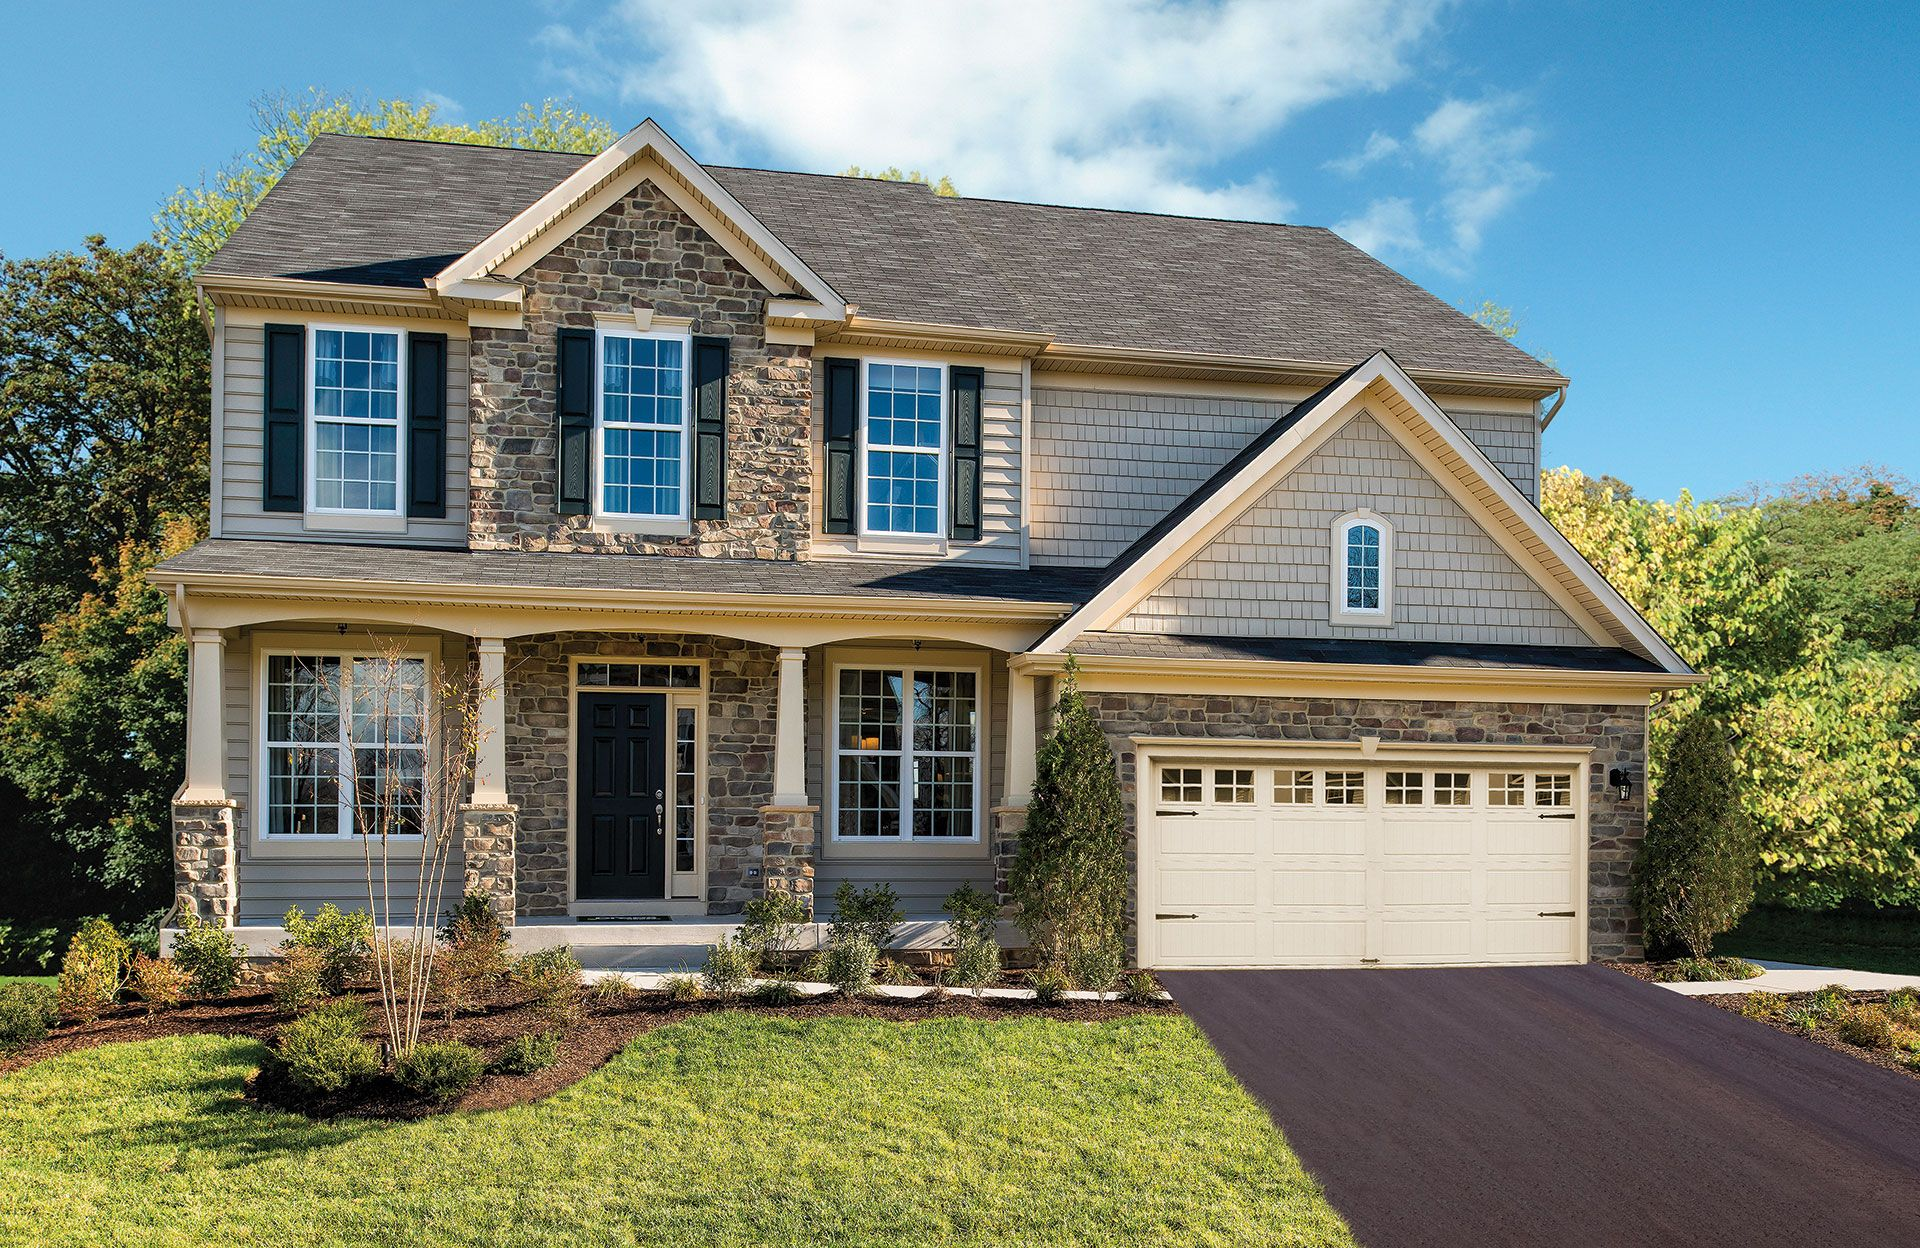 '' building or community at '141 Coachman Circle Stafford, Virginia 22554 United States'